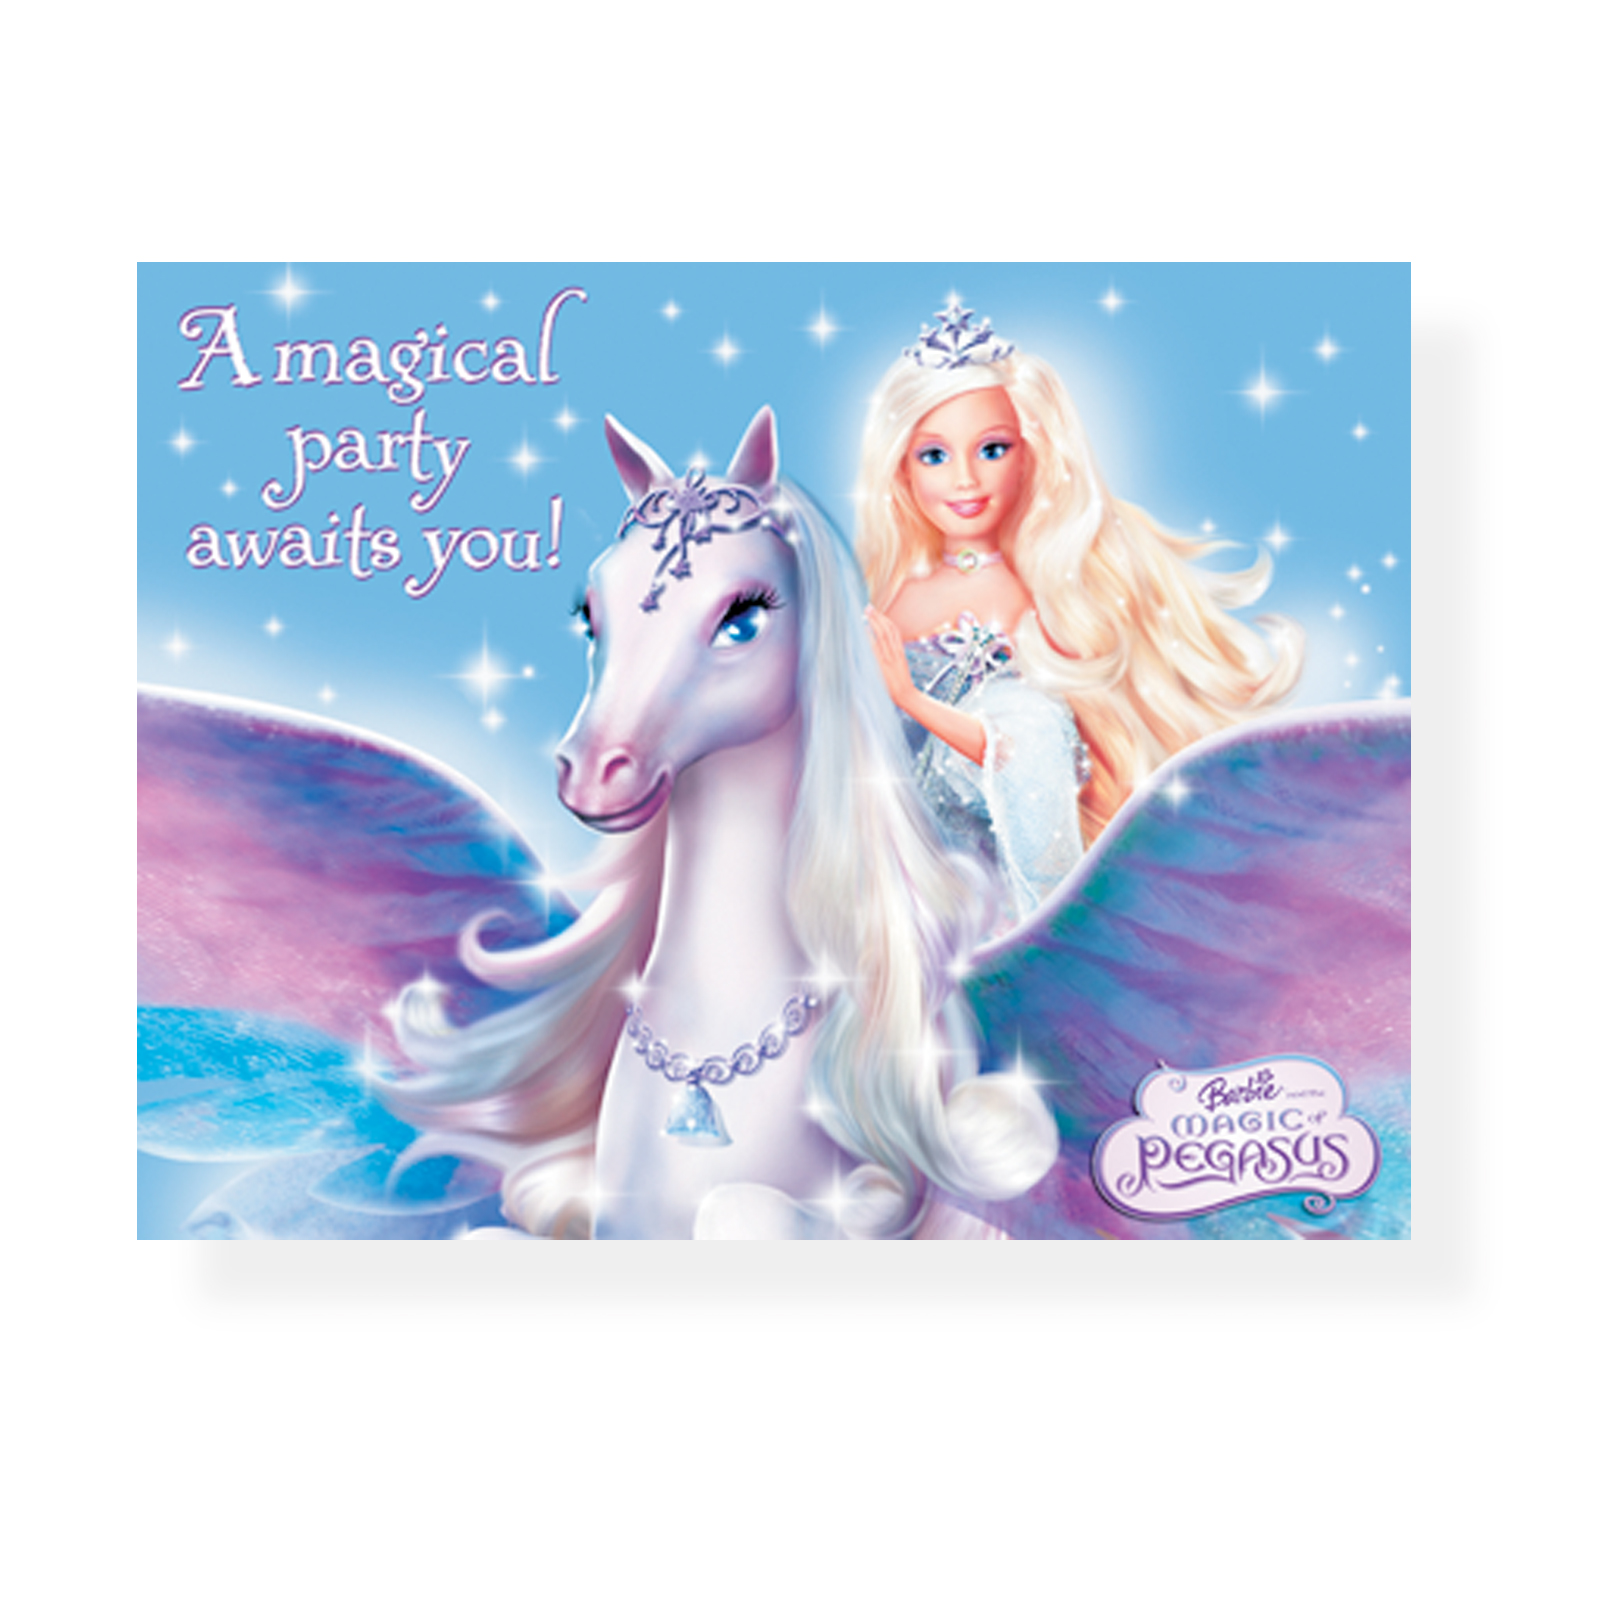 Barbie Pegasus Cute Cartoons Magic